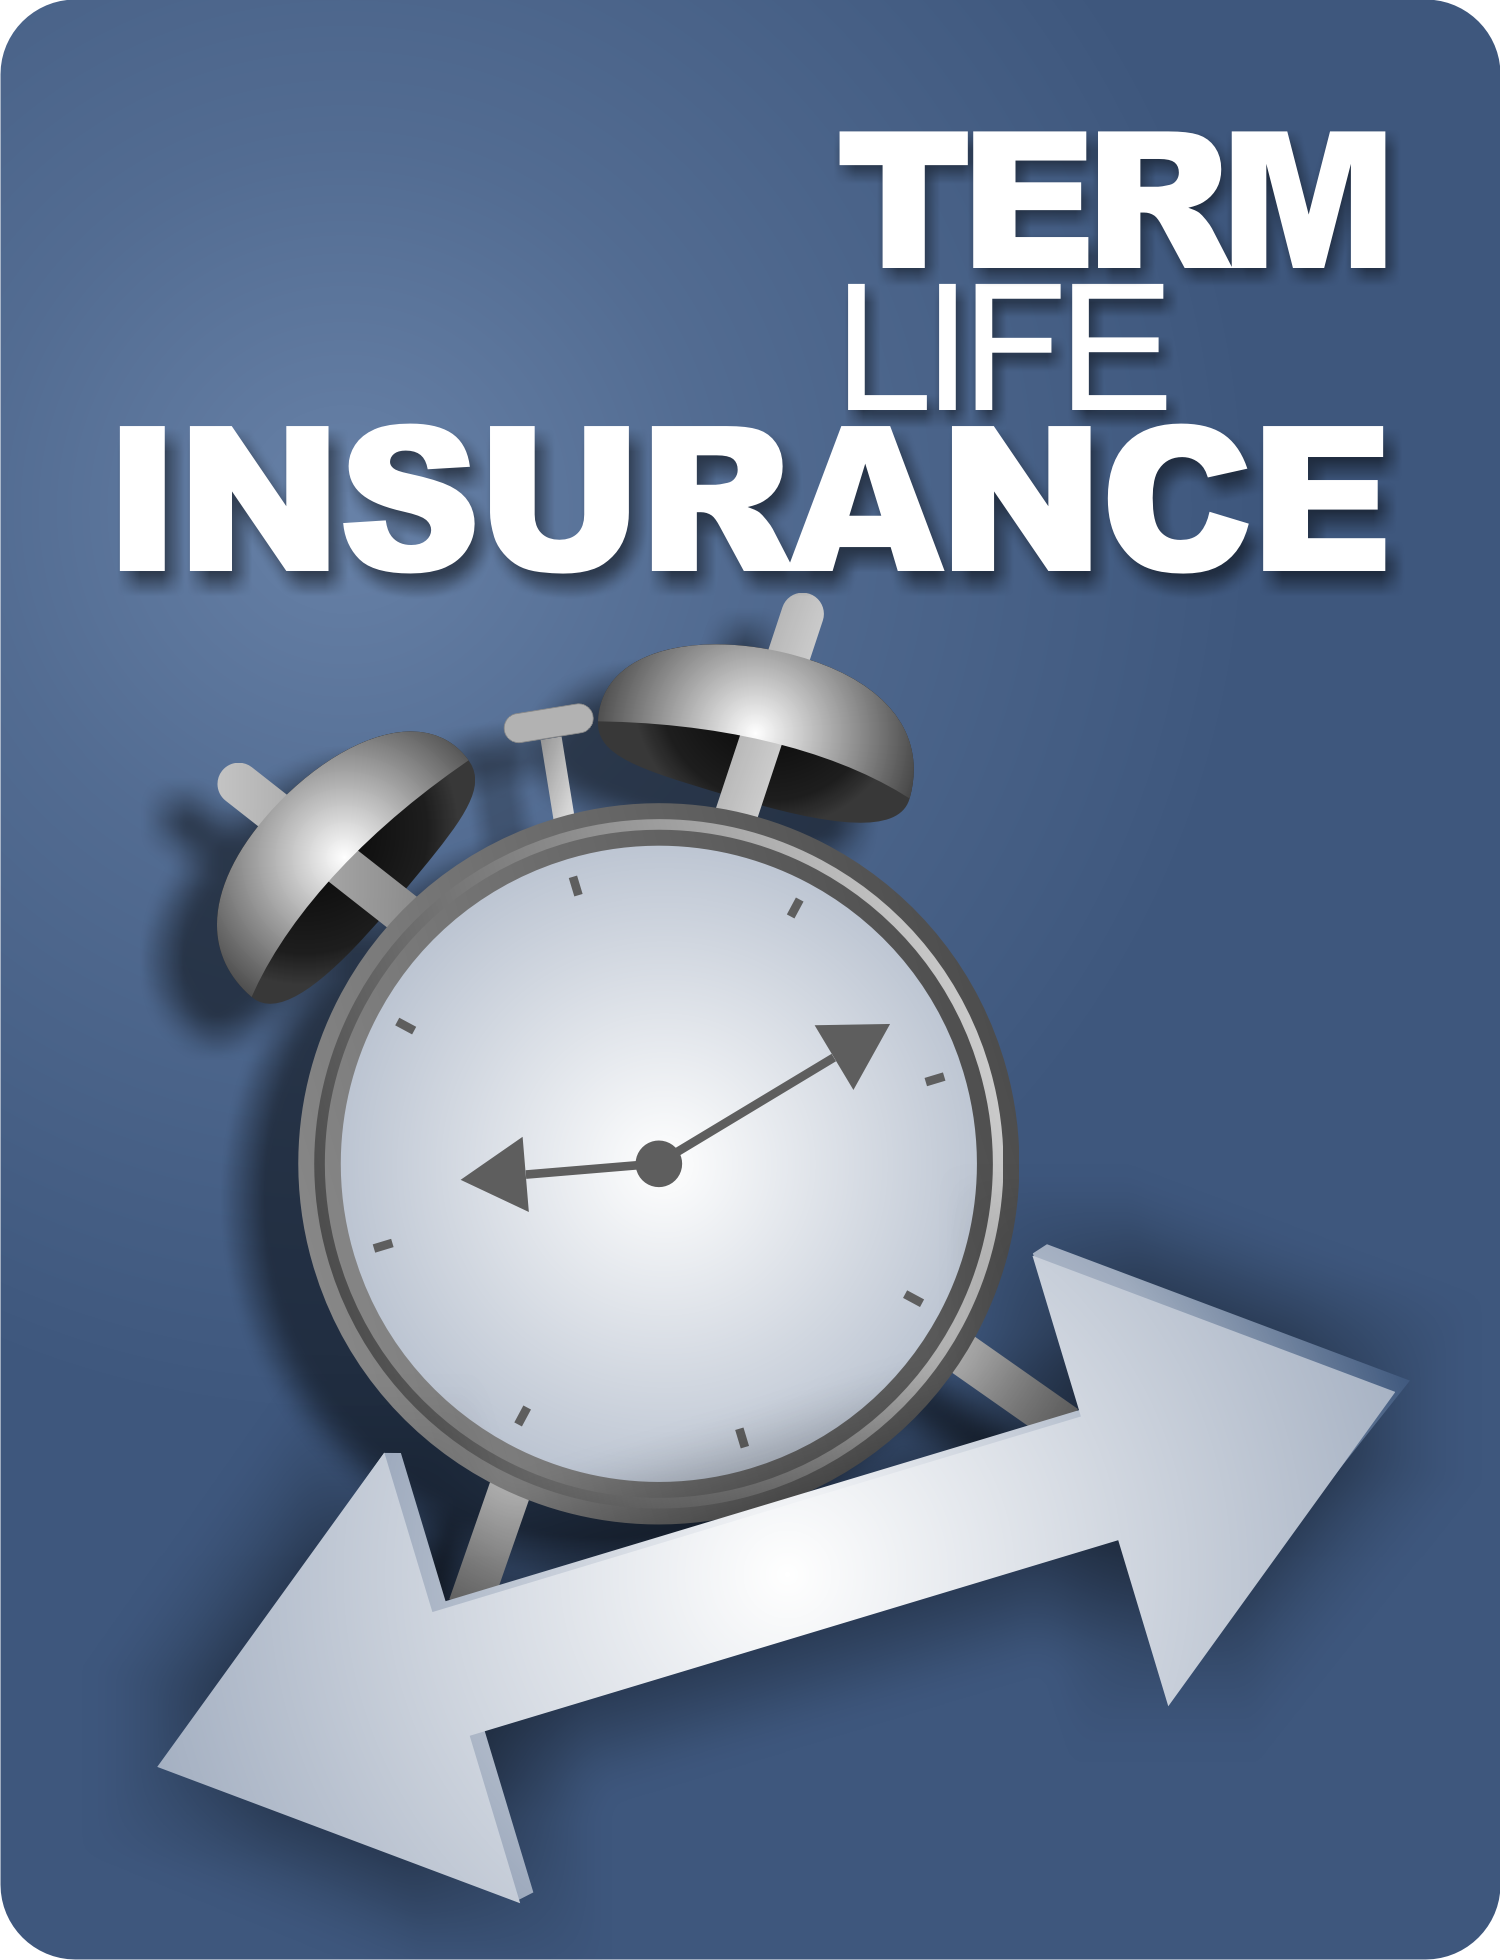 Affordable Life Insurance Quotes Cool Don't Wait Until It's Too Late Protect Your Family With A Term